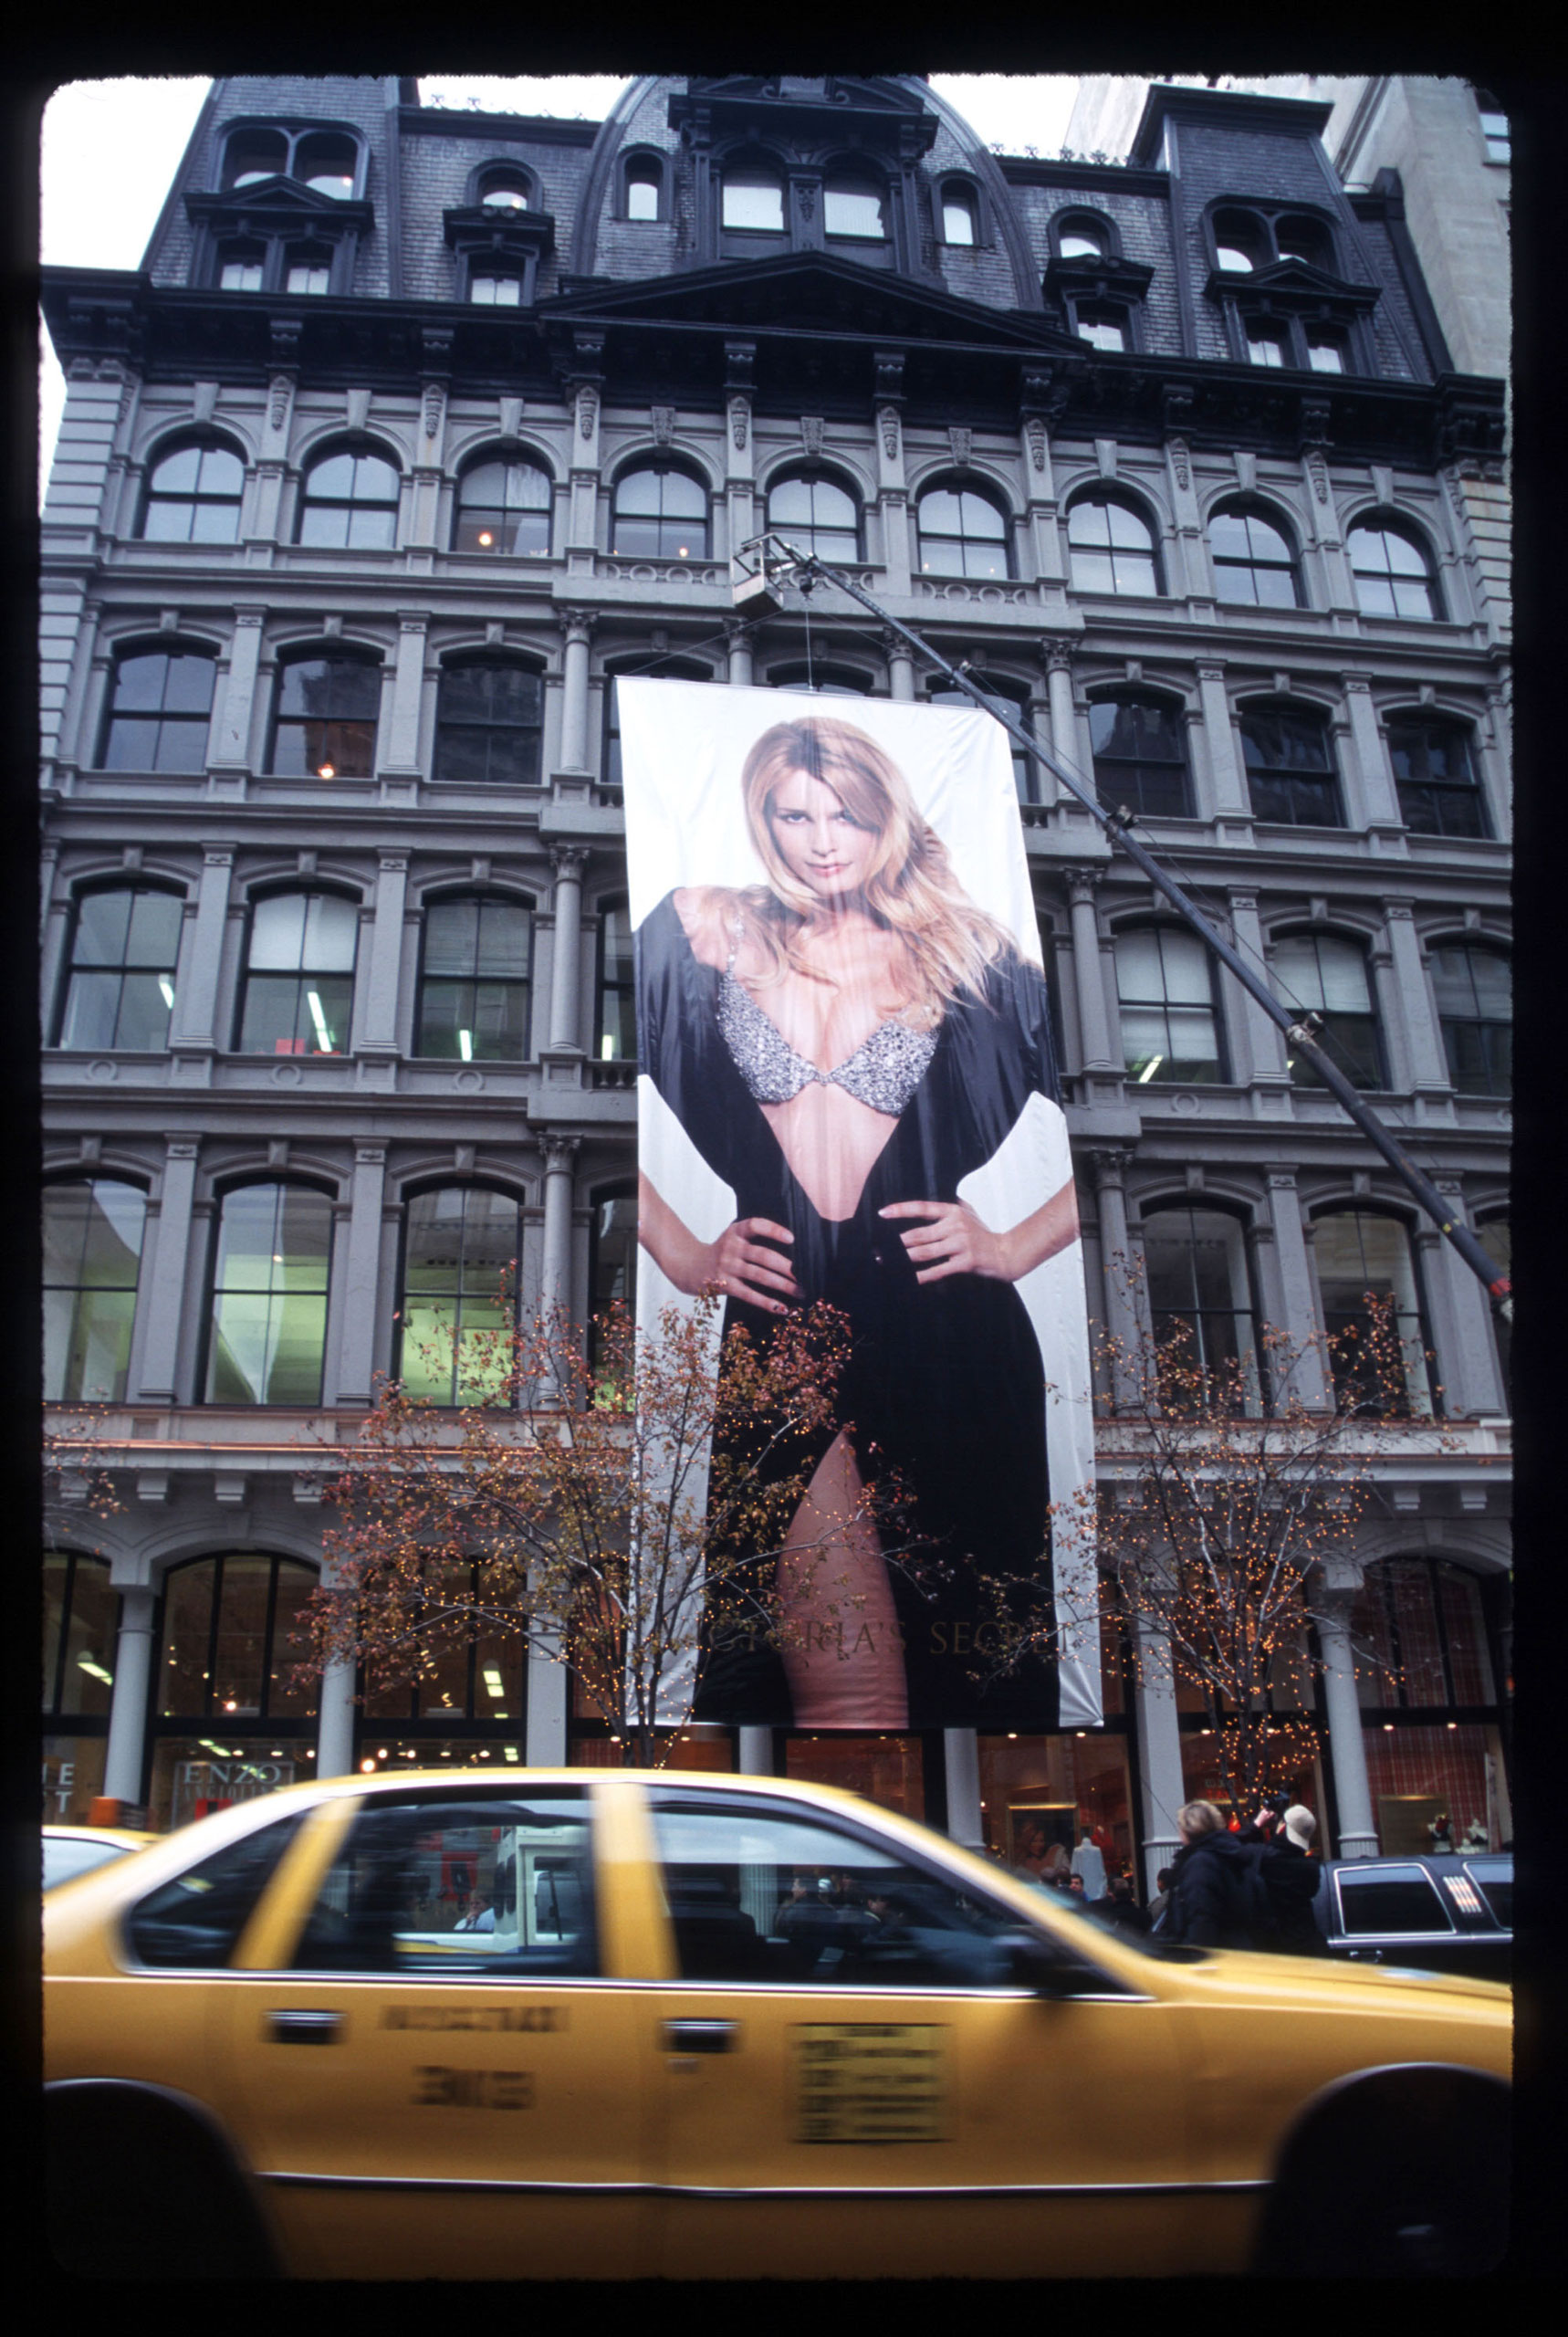 "<strong>The Million Dollar Miracle Bra</strong> Launched with this five-story likeness of Claudia Schiffer on Dec. 4, 1996 in New York City, the diamond-encrusted push up bra was the first of Victoria Secret's yearly Fantasy Bras. The price tag on these luxury lingerie items has increased exponentially since then, and for the first time the company will debut <a href=""http://www.cosmopolitan.com/style-beauty/fashion/news/a32800/victorias-secret-fashion-show-2014-fantasy-bra/?click=_hpTrnsprtr_5"" target=""_blank"">two Fantasy Bras</a>, valued at $2 million each, at the 2014 Victoria's Secret Fashion Show."